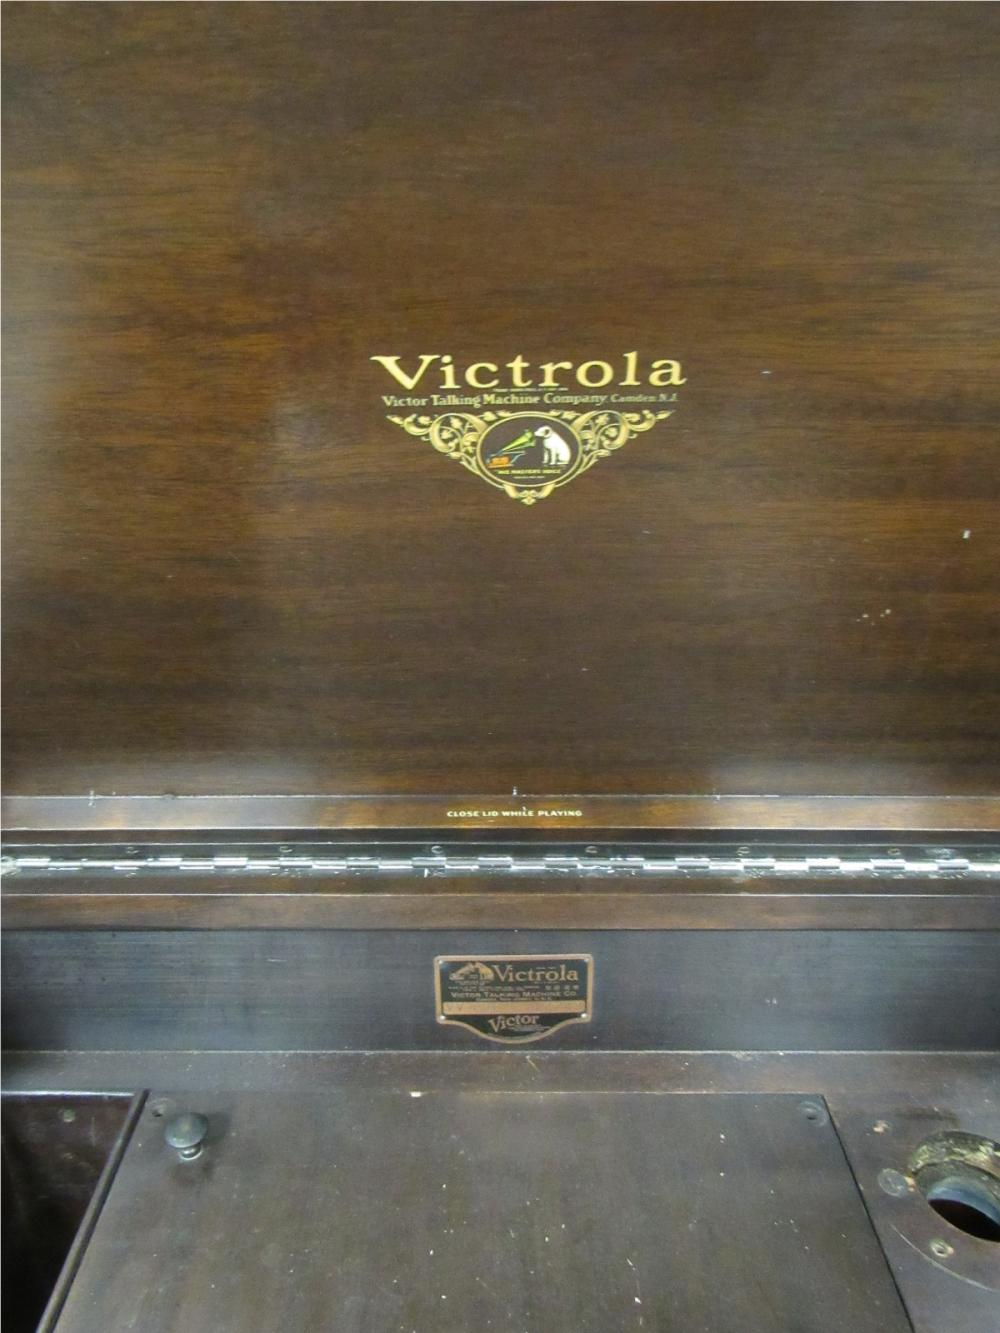 Lot 192: Vintage Victorola Cabinet, All Responsibility for Shipping will be the Successful Bidder. You must arrange for pickup directly or by a shipper within 7 days after sale.